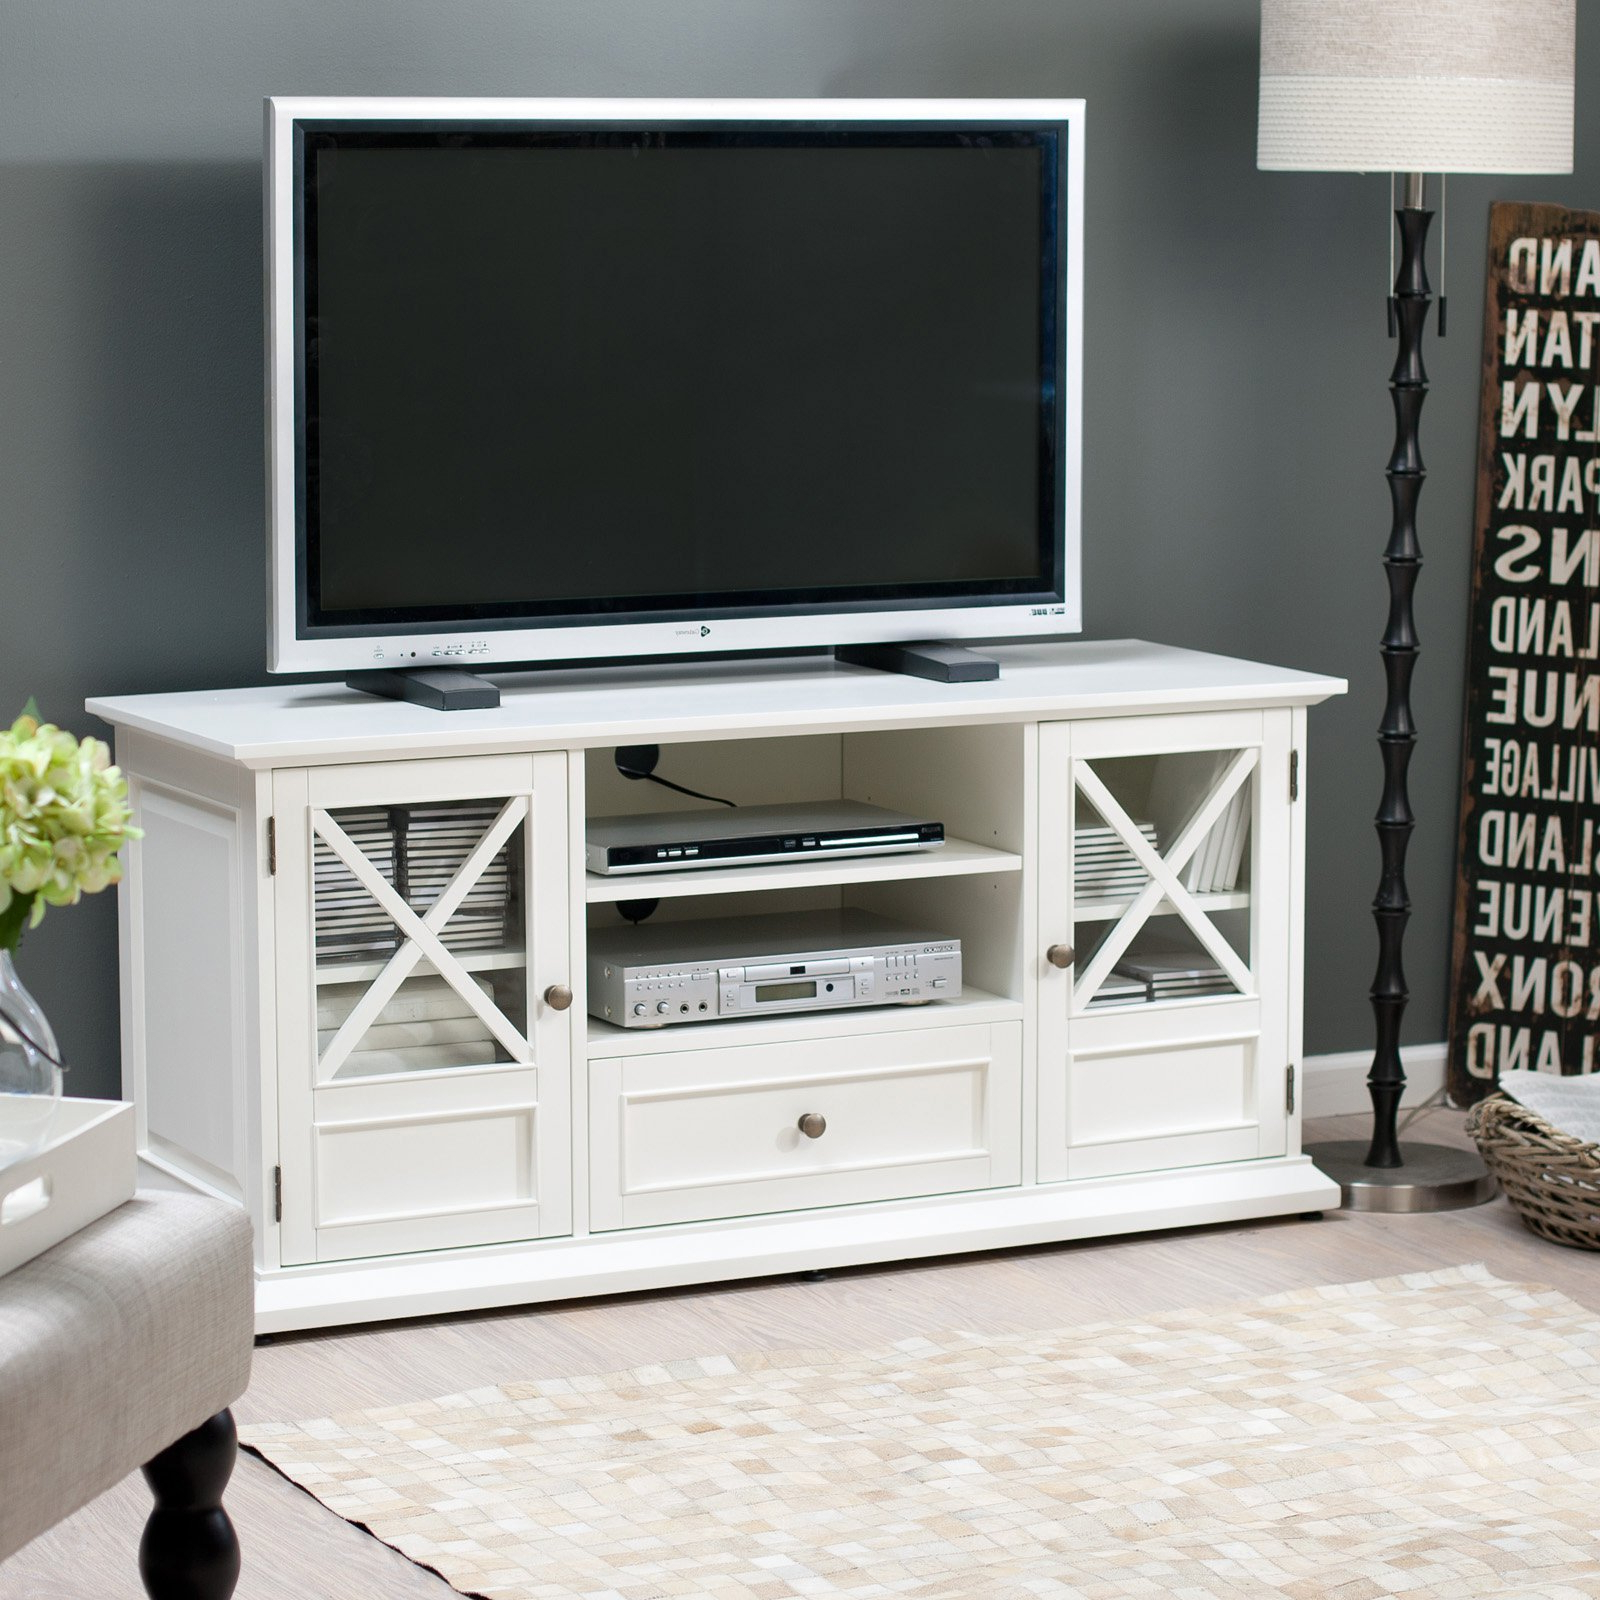 Country Style Tv Cabinets For Well Known Belham Living Hampton Tv Stand – White – Walmart (View 2 of 20)